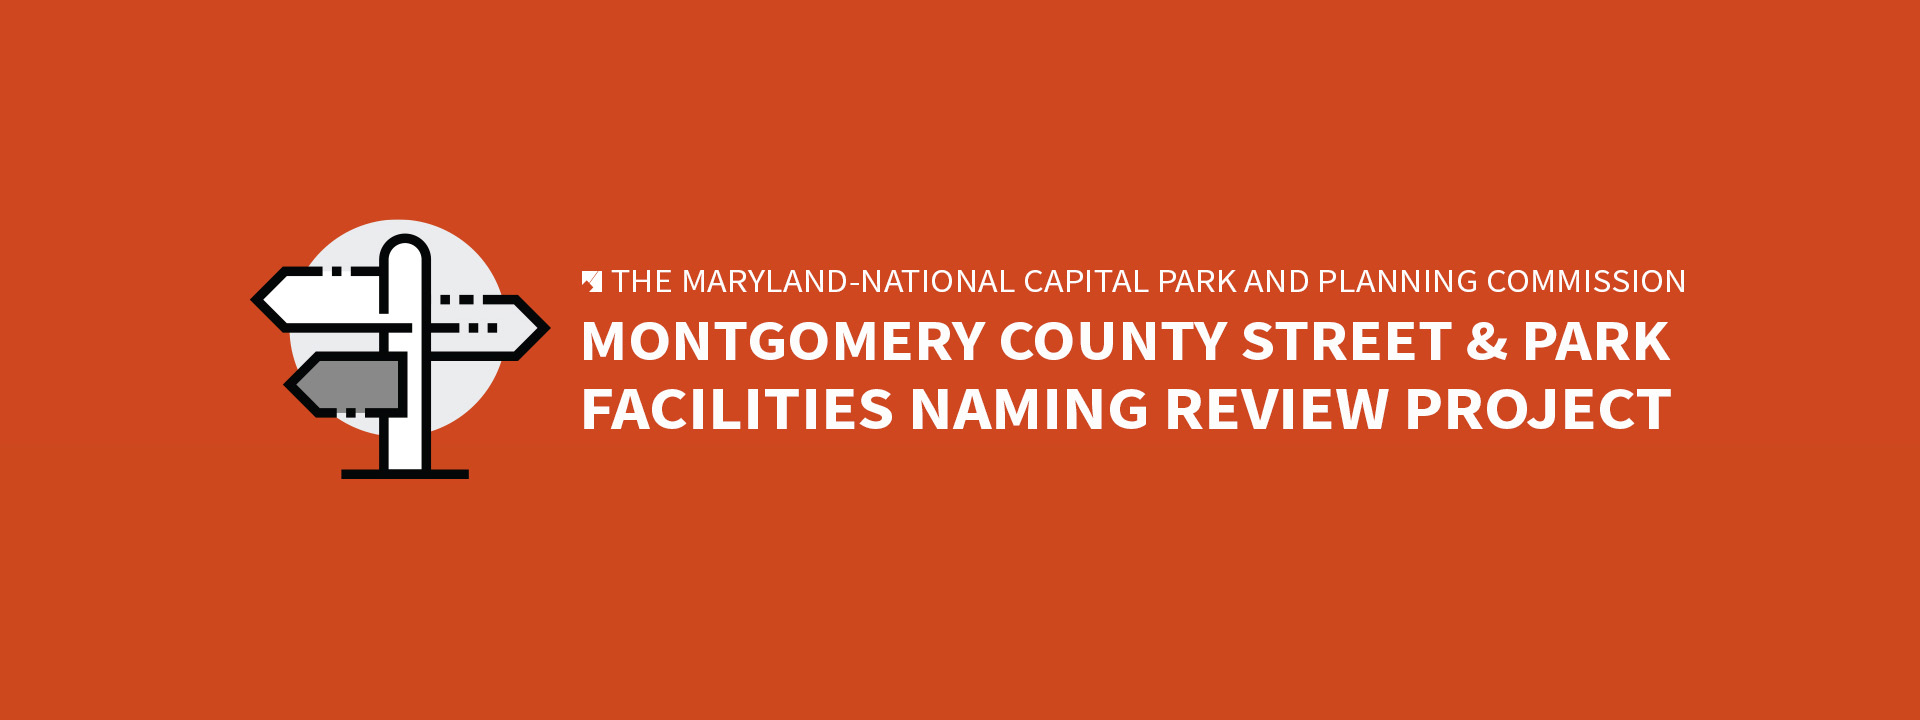 Montgomery County Street and Park Facilities Naming Review Project